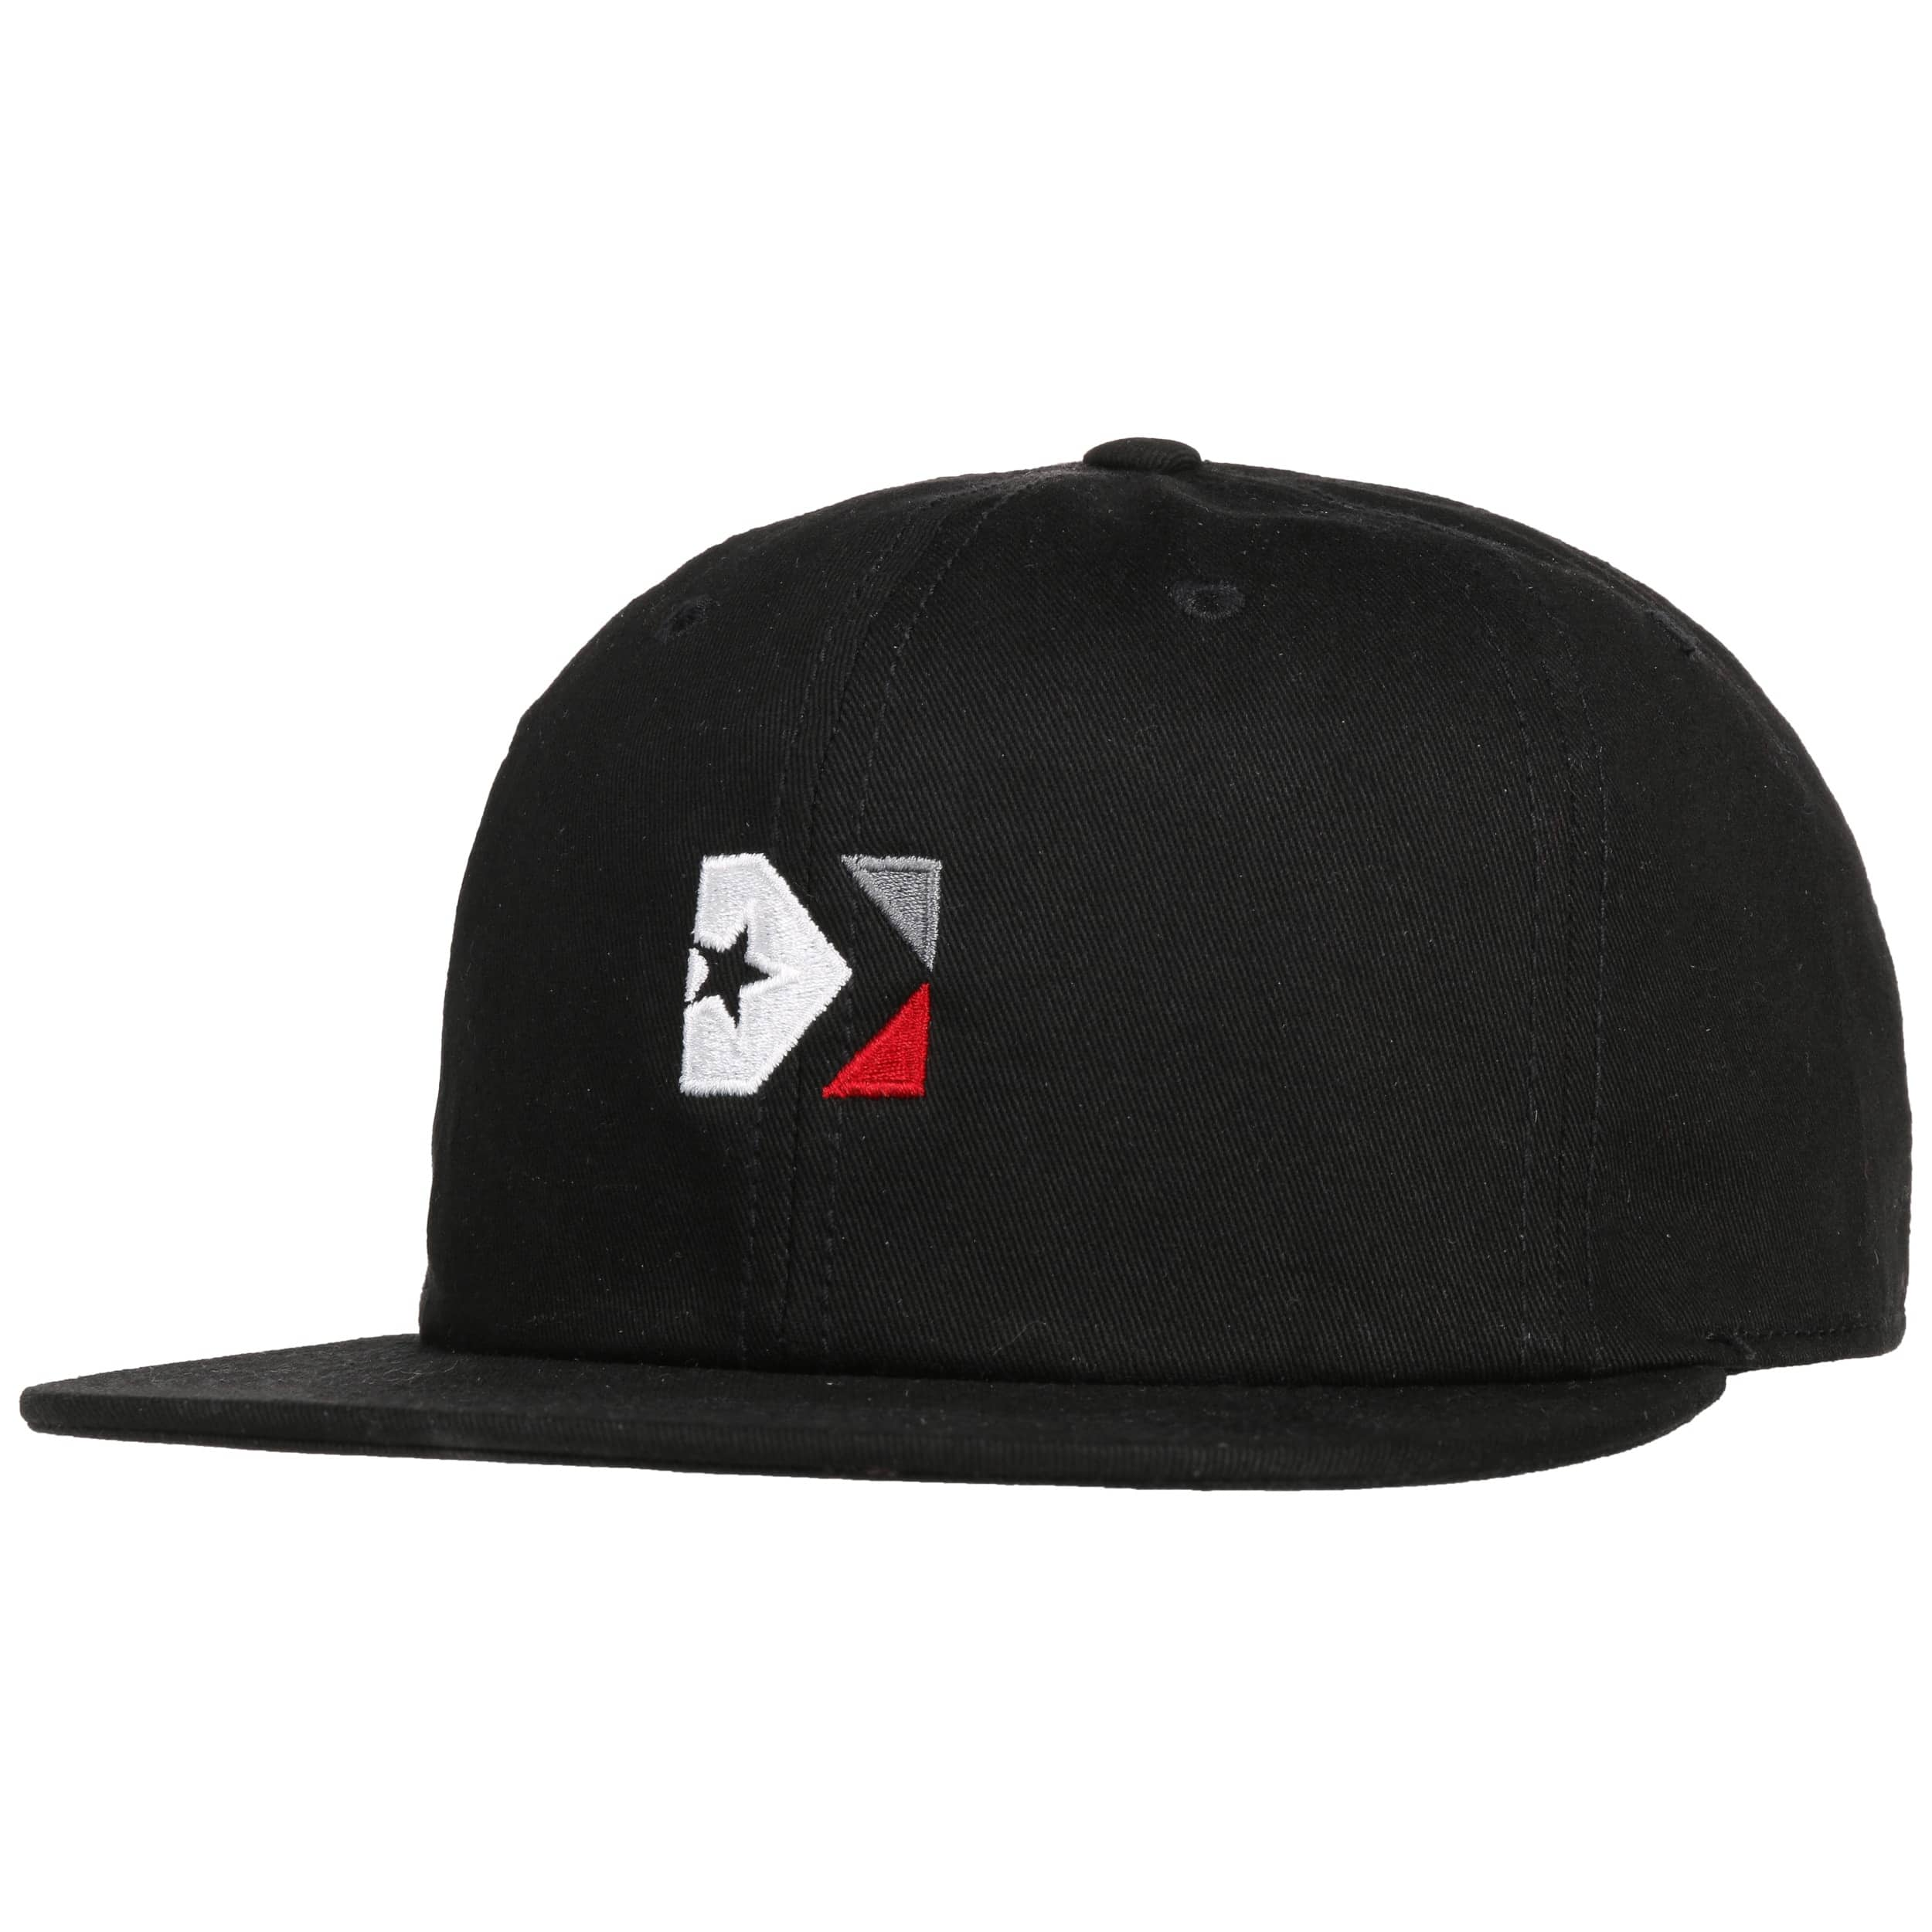 c8cc00f8d27012 ... Star Chevron Box Cap by Converse - black 6 ...